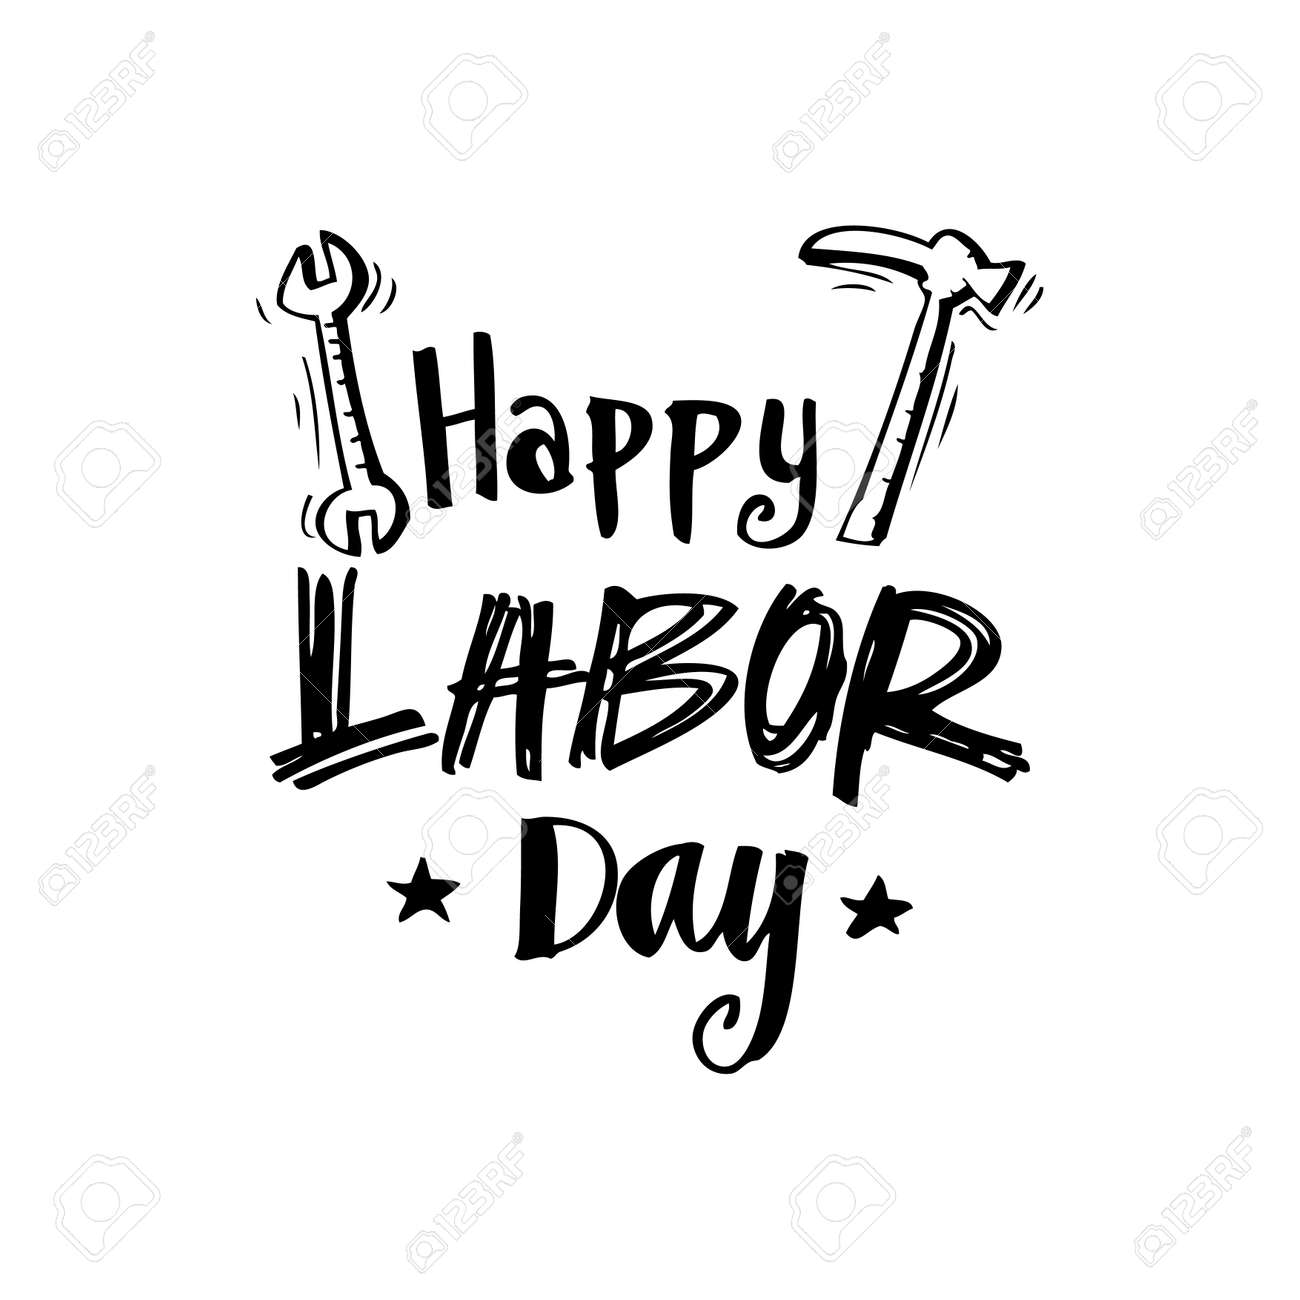 Happy Labor Day Phrase Royalty Free Cliparts Vectors And Stock Illustration Image 75320435